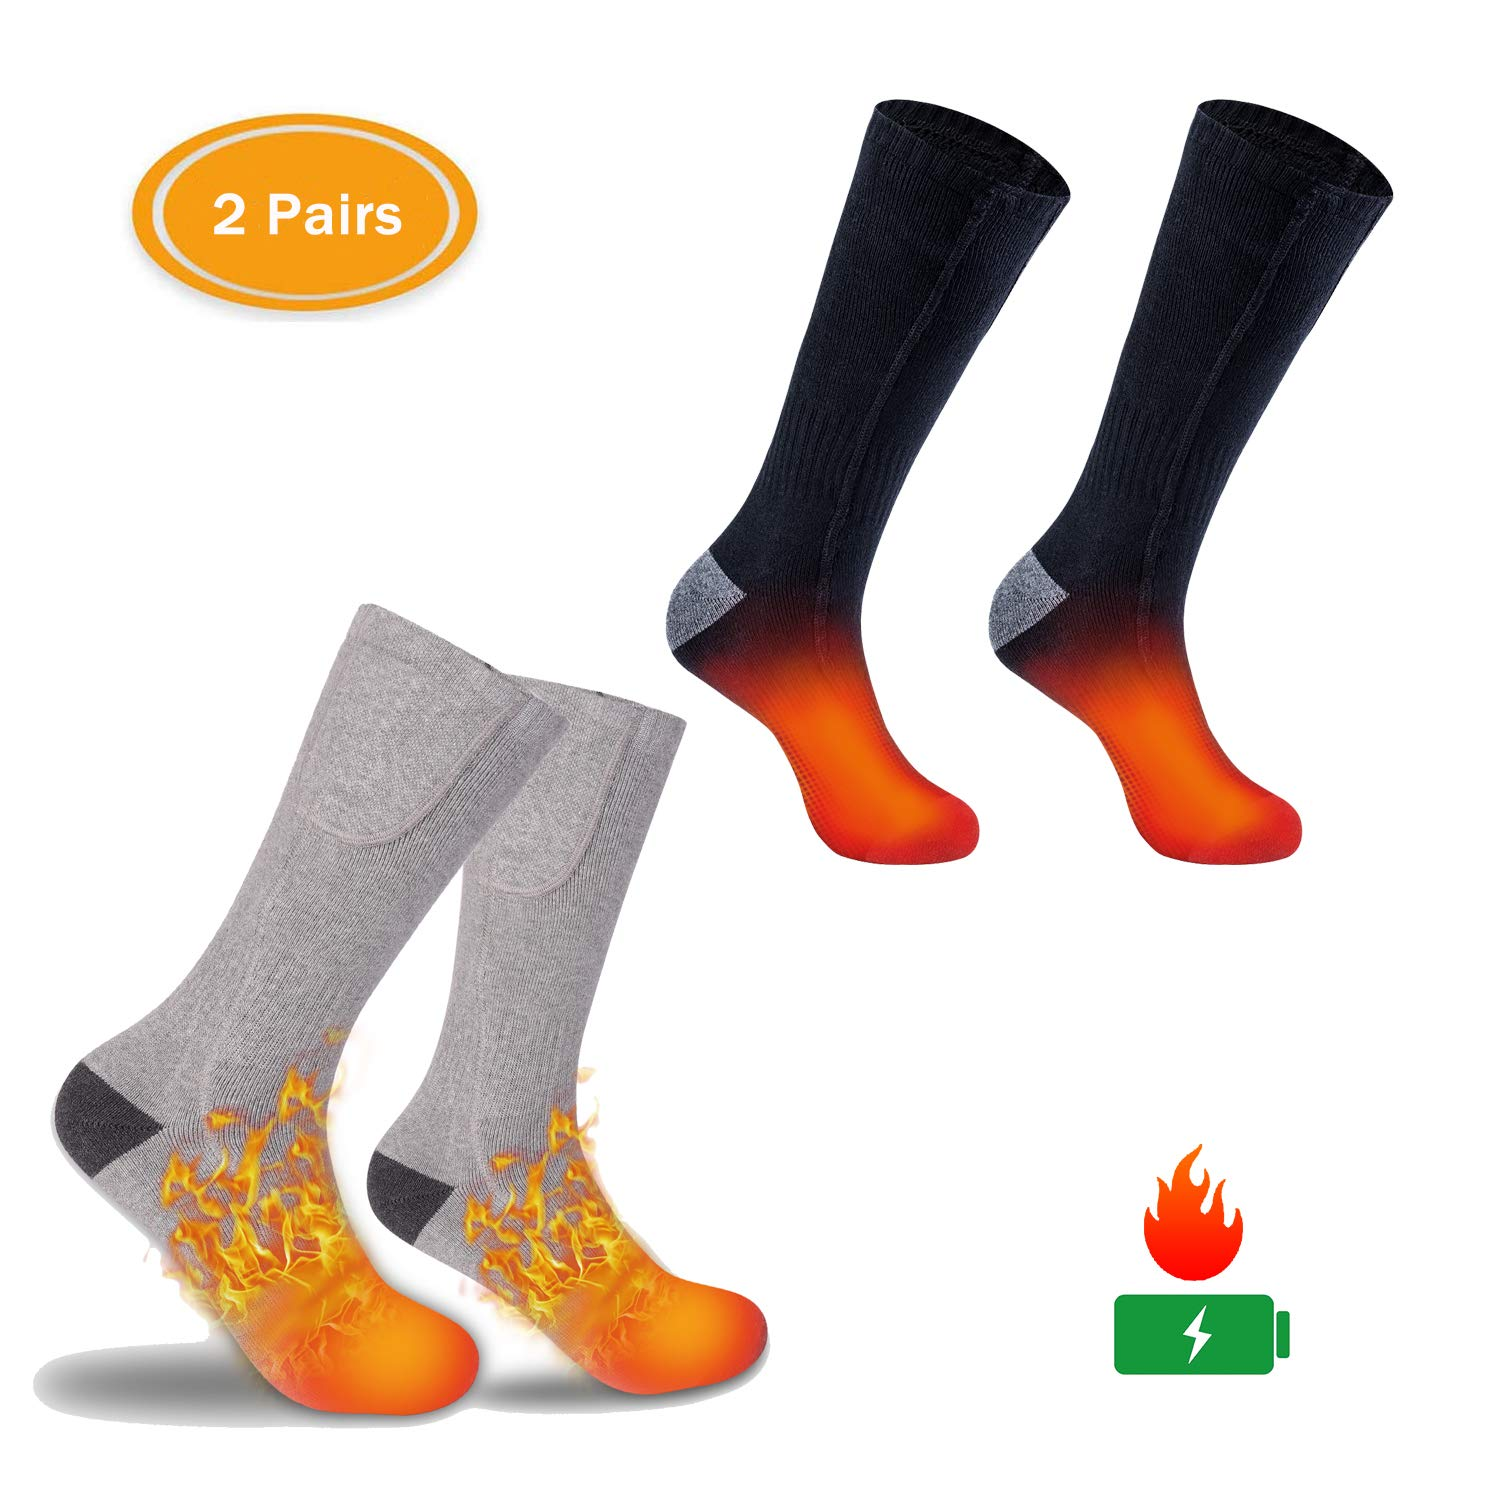 ZLTFashion Electric Heated Socks, Cordless Portable Rechargeable Infrared Heating Cold Weather Thermal Socks Sport Outdoor Camping Hiking Warm Winter Sox for Men Women (Black&Gray) by ZLTFashion